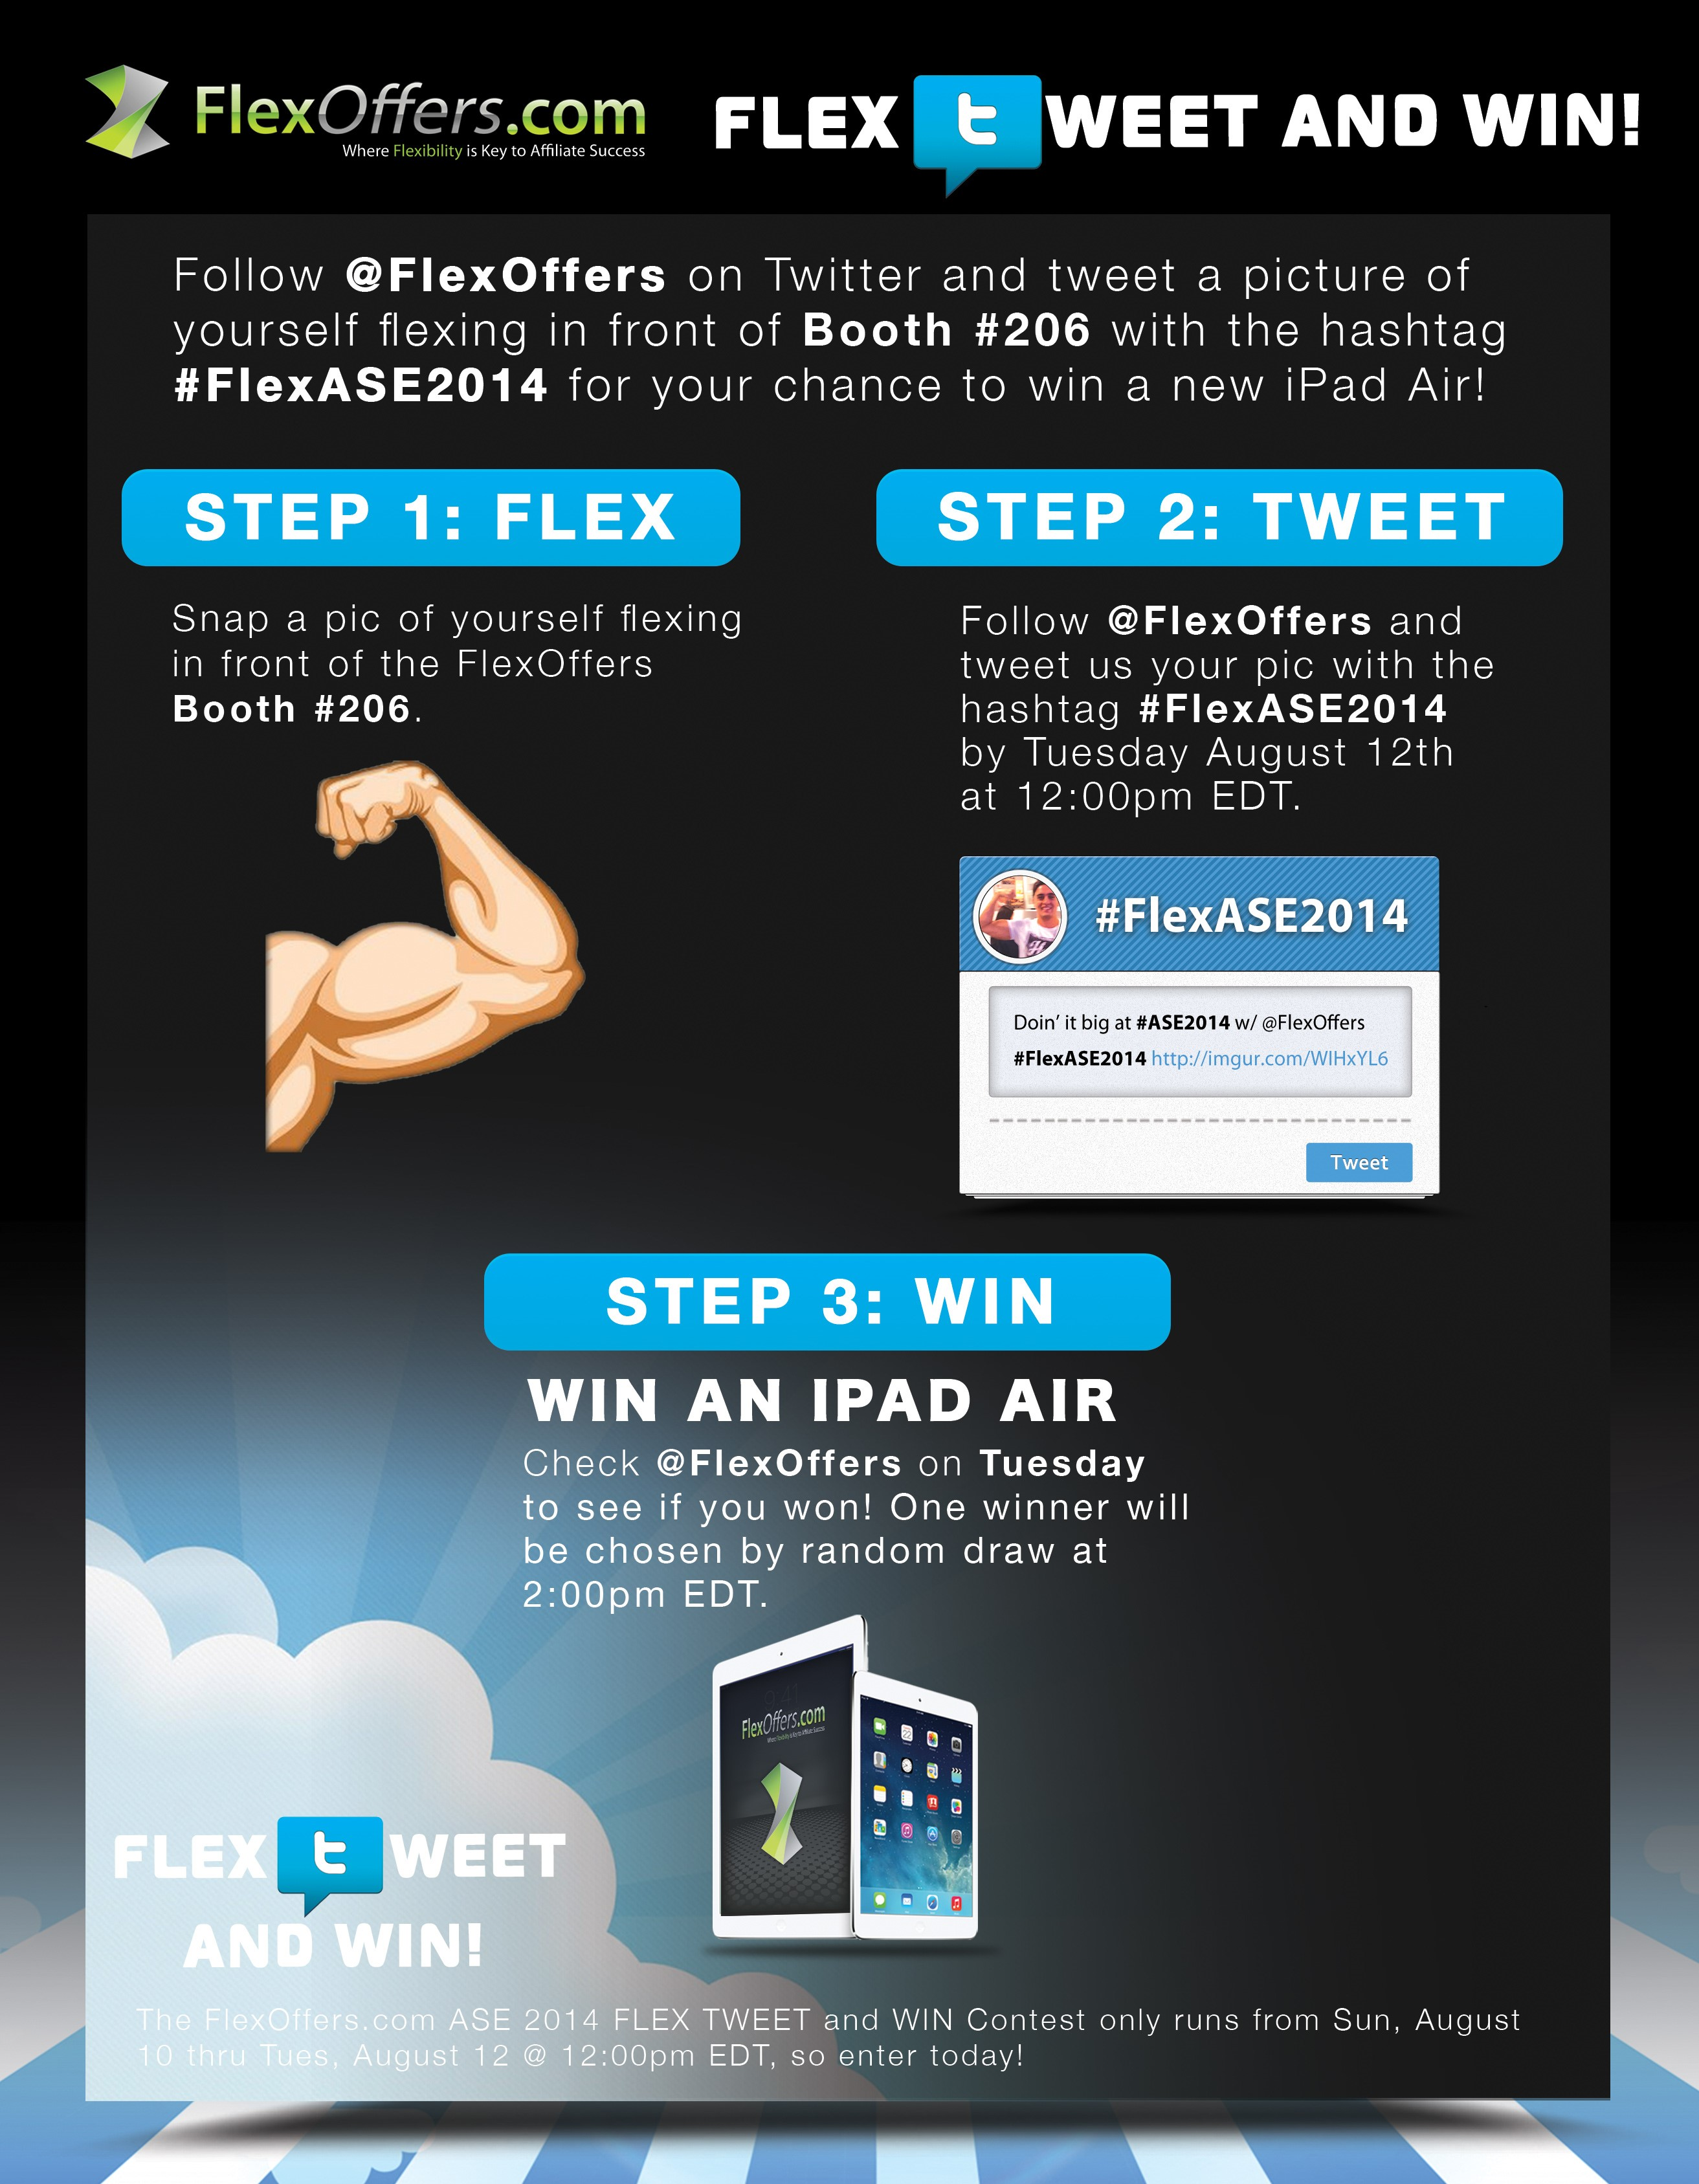 Affiliate Summit East 2014 New York ASE2014 NY FlexOffers FlexOffers.com Flex Tweet and Win Twitter Contest iPad Air